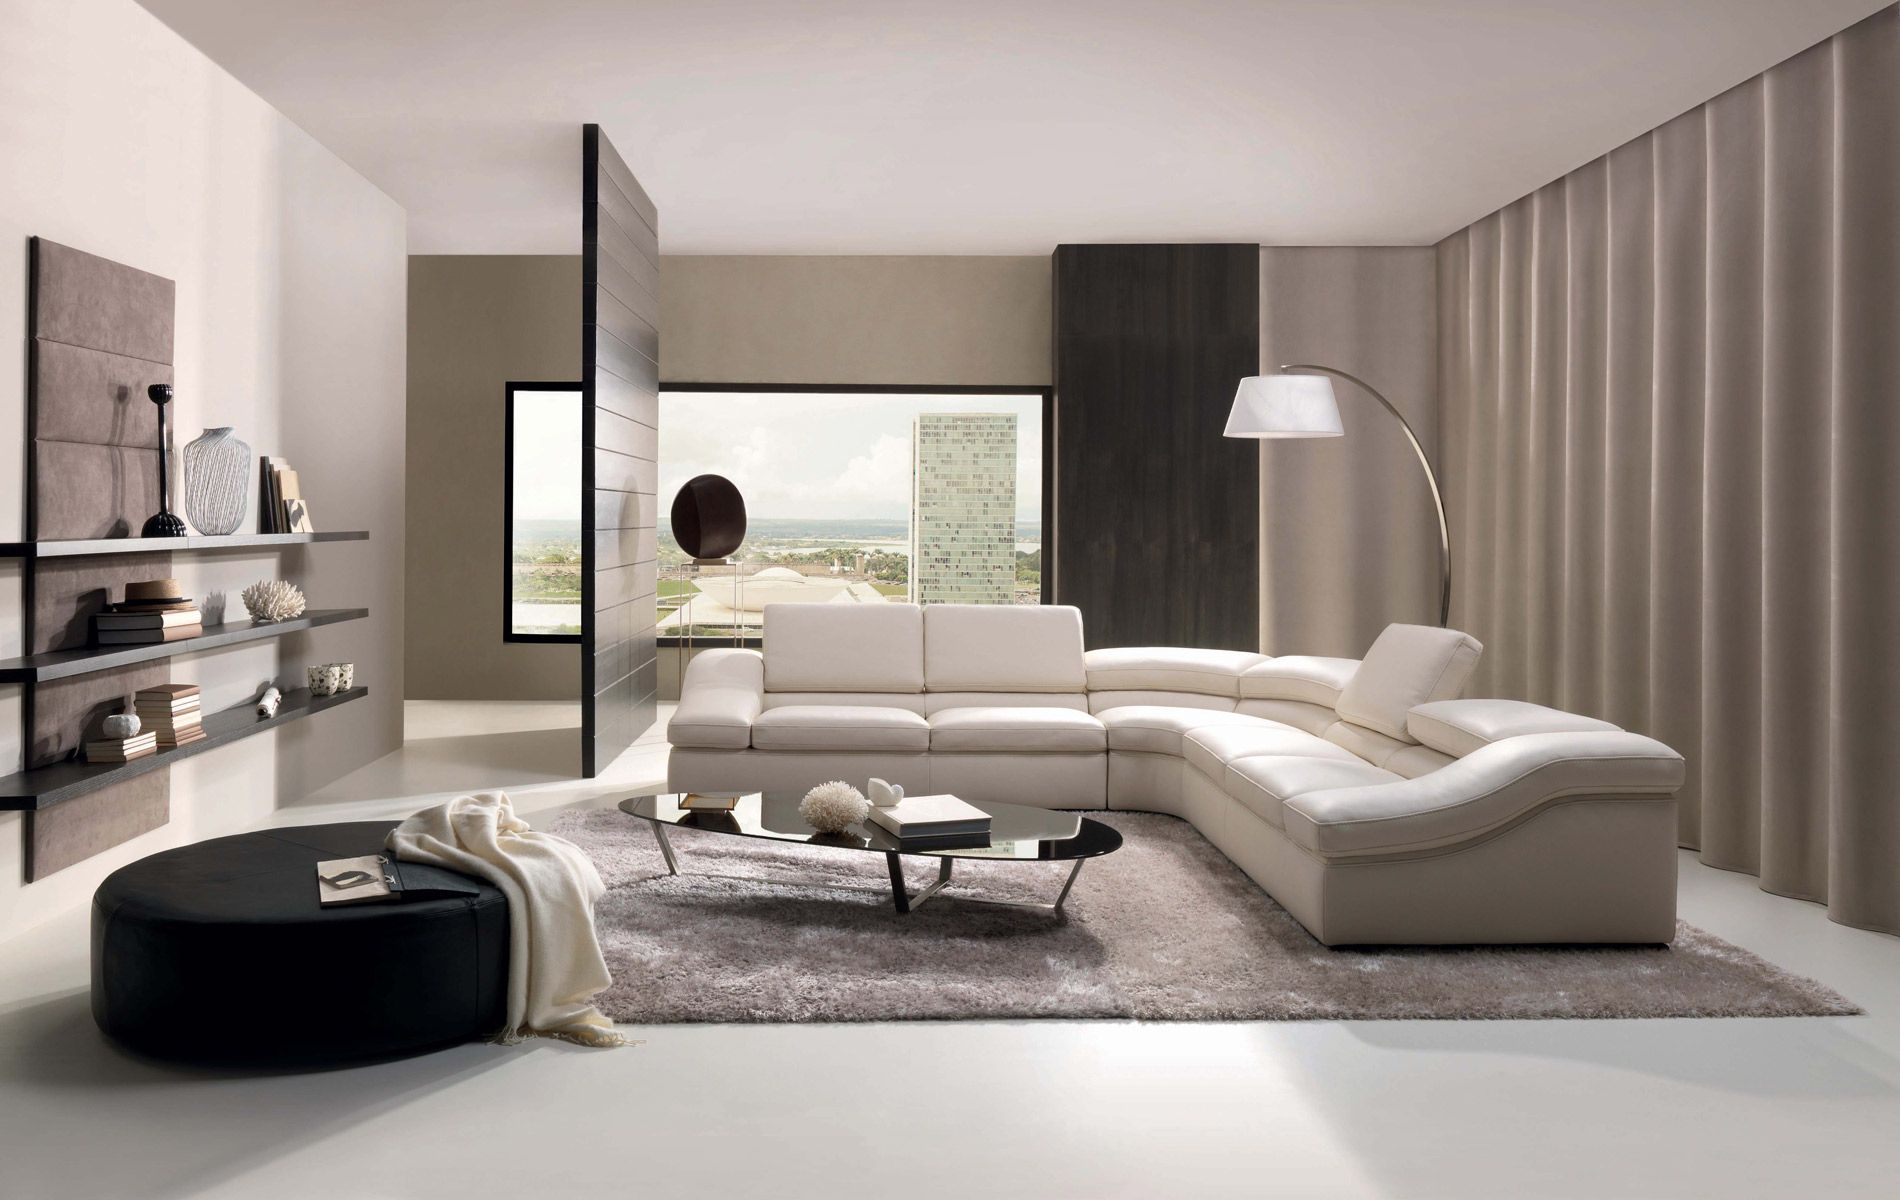 White Sectional Sofa and Wide Black Ottoman near Fascinating Living Room Floor Lamps